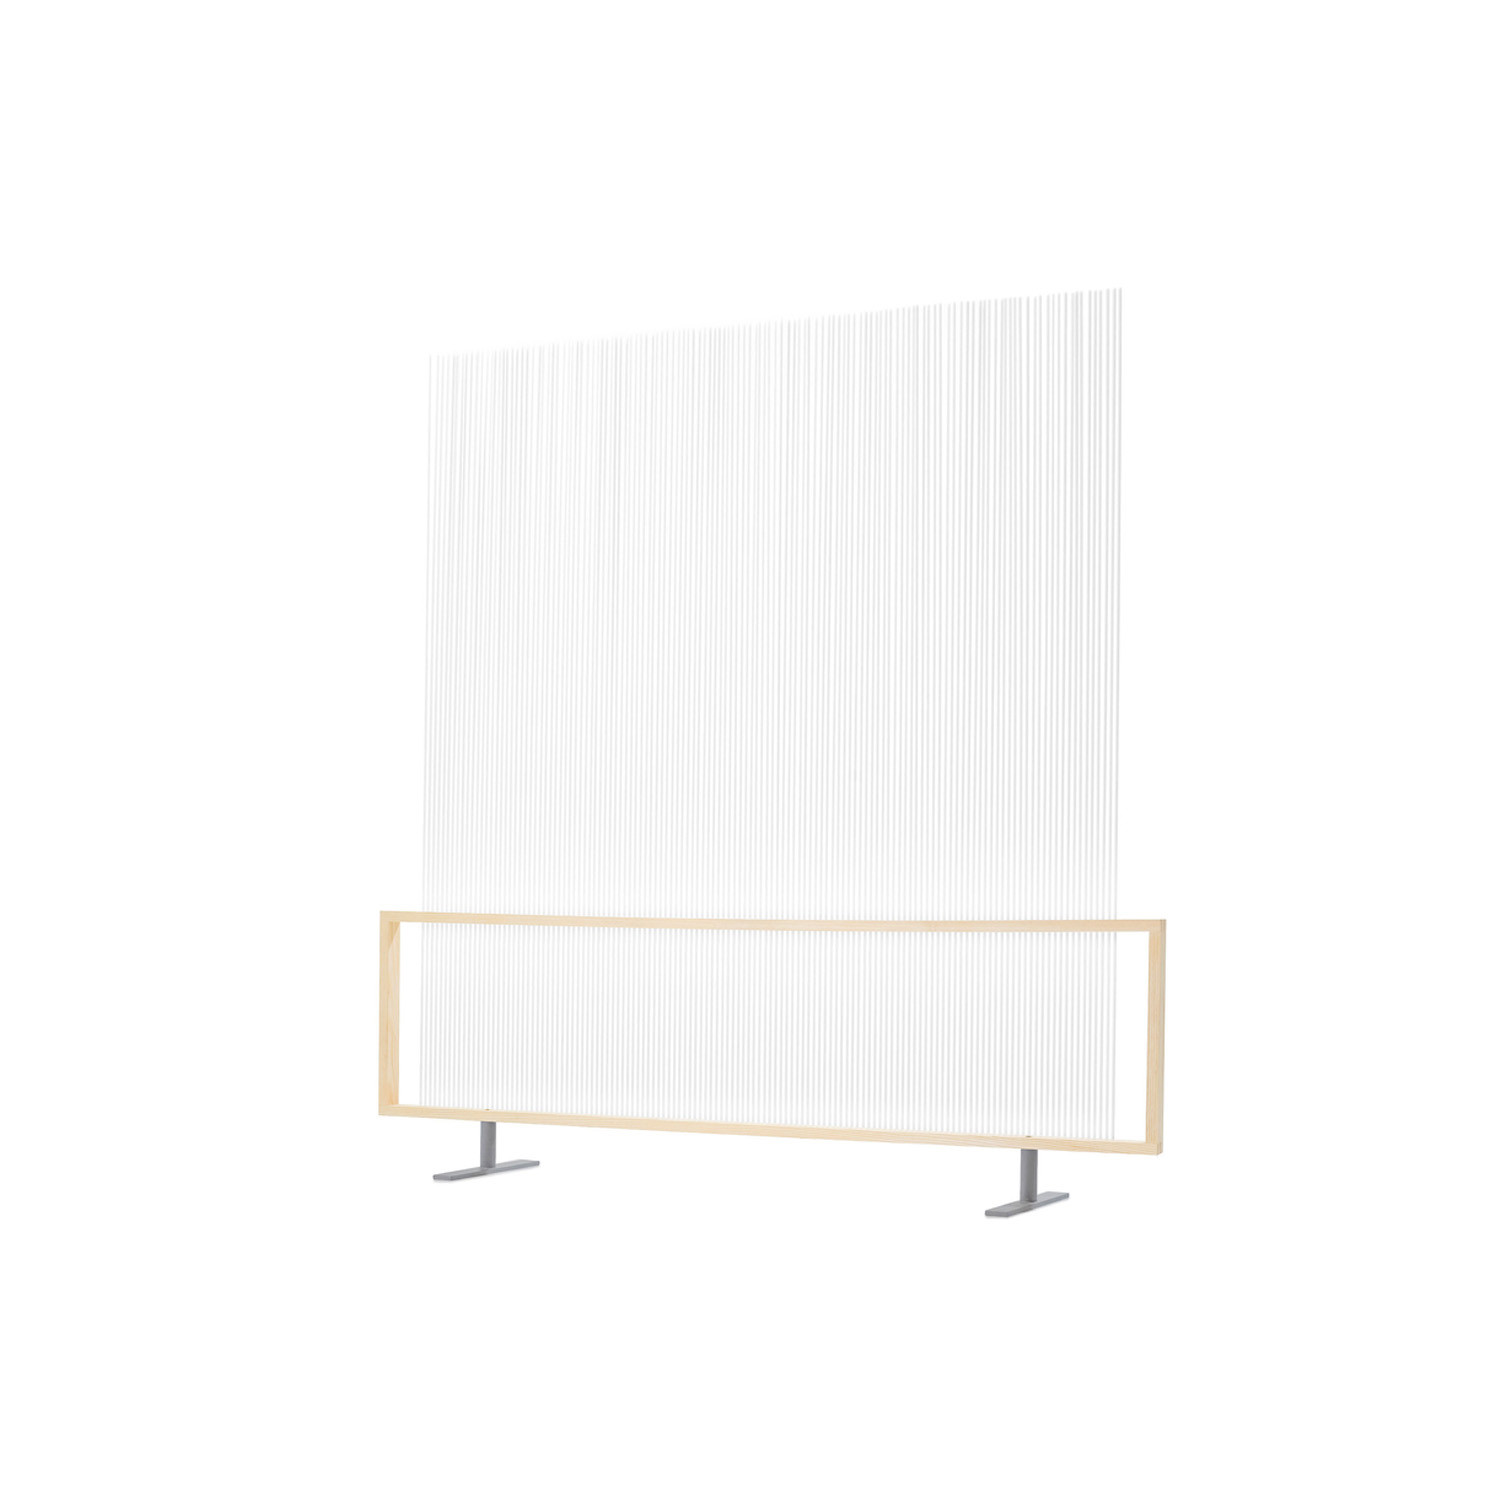 Spaghetti Wall Room Dividers - White